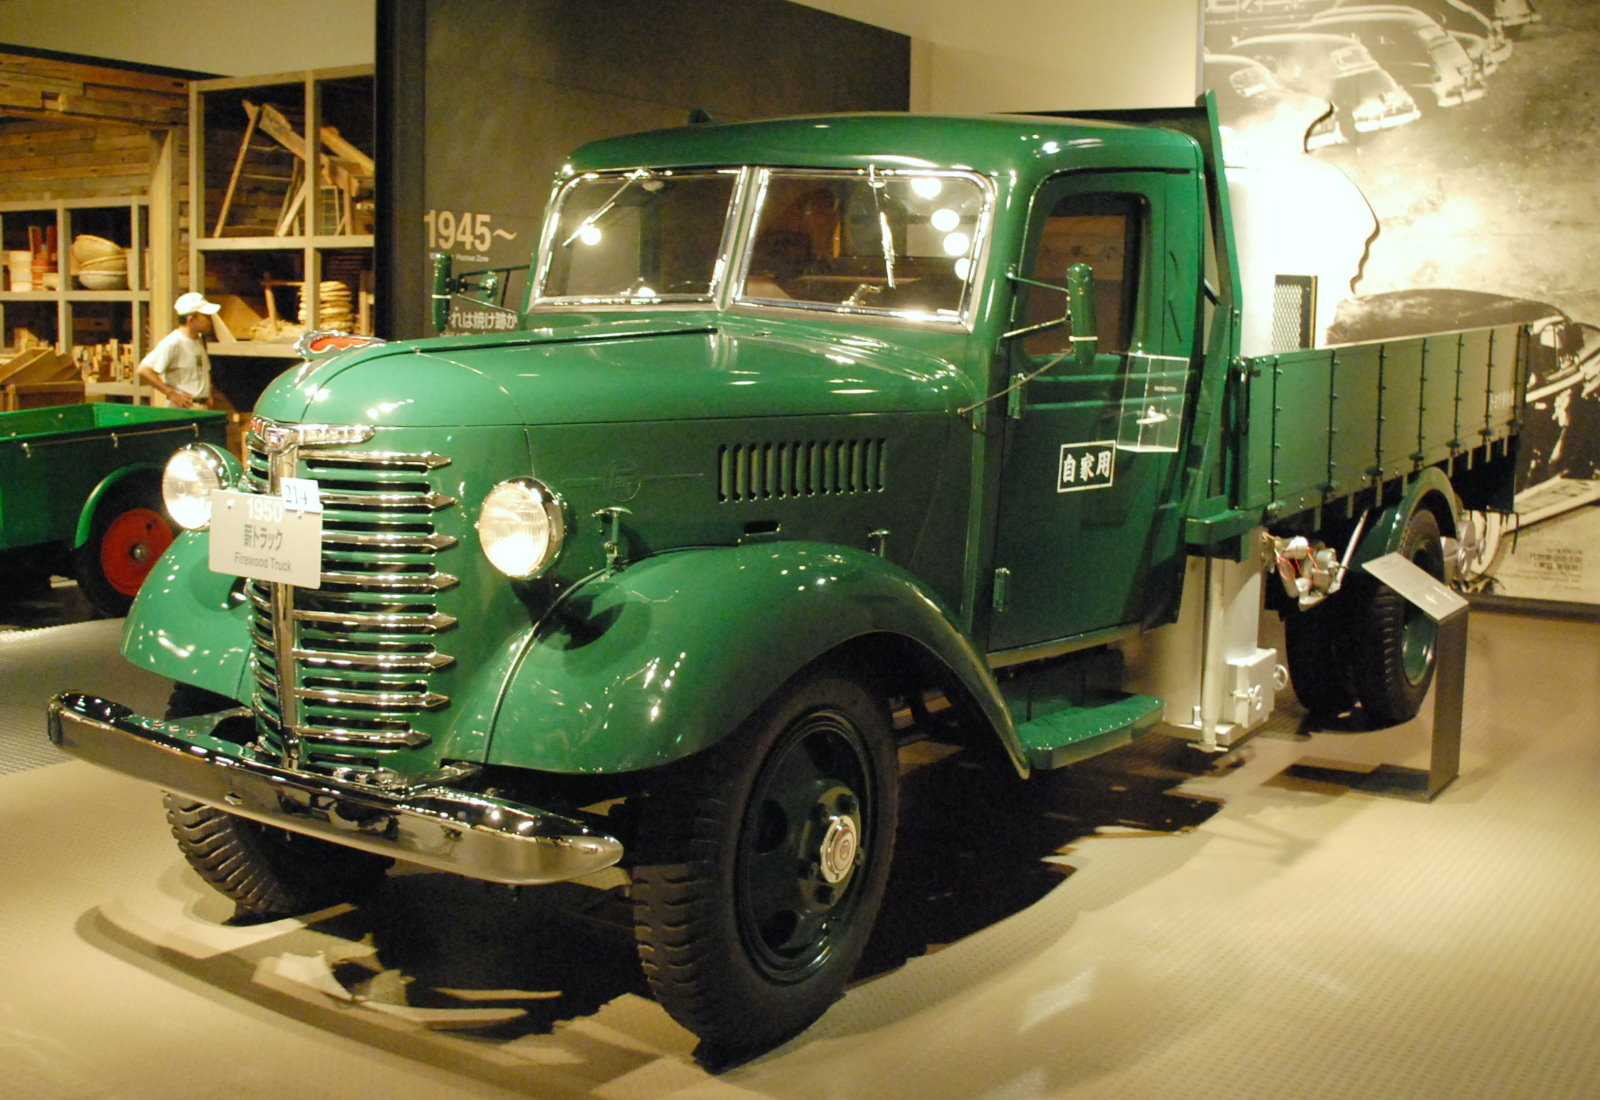 Datei 1950 Toyota Model Bm Truck 01 Jpg Wikipedia